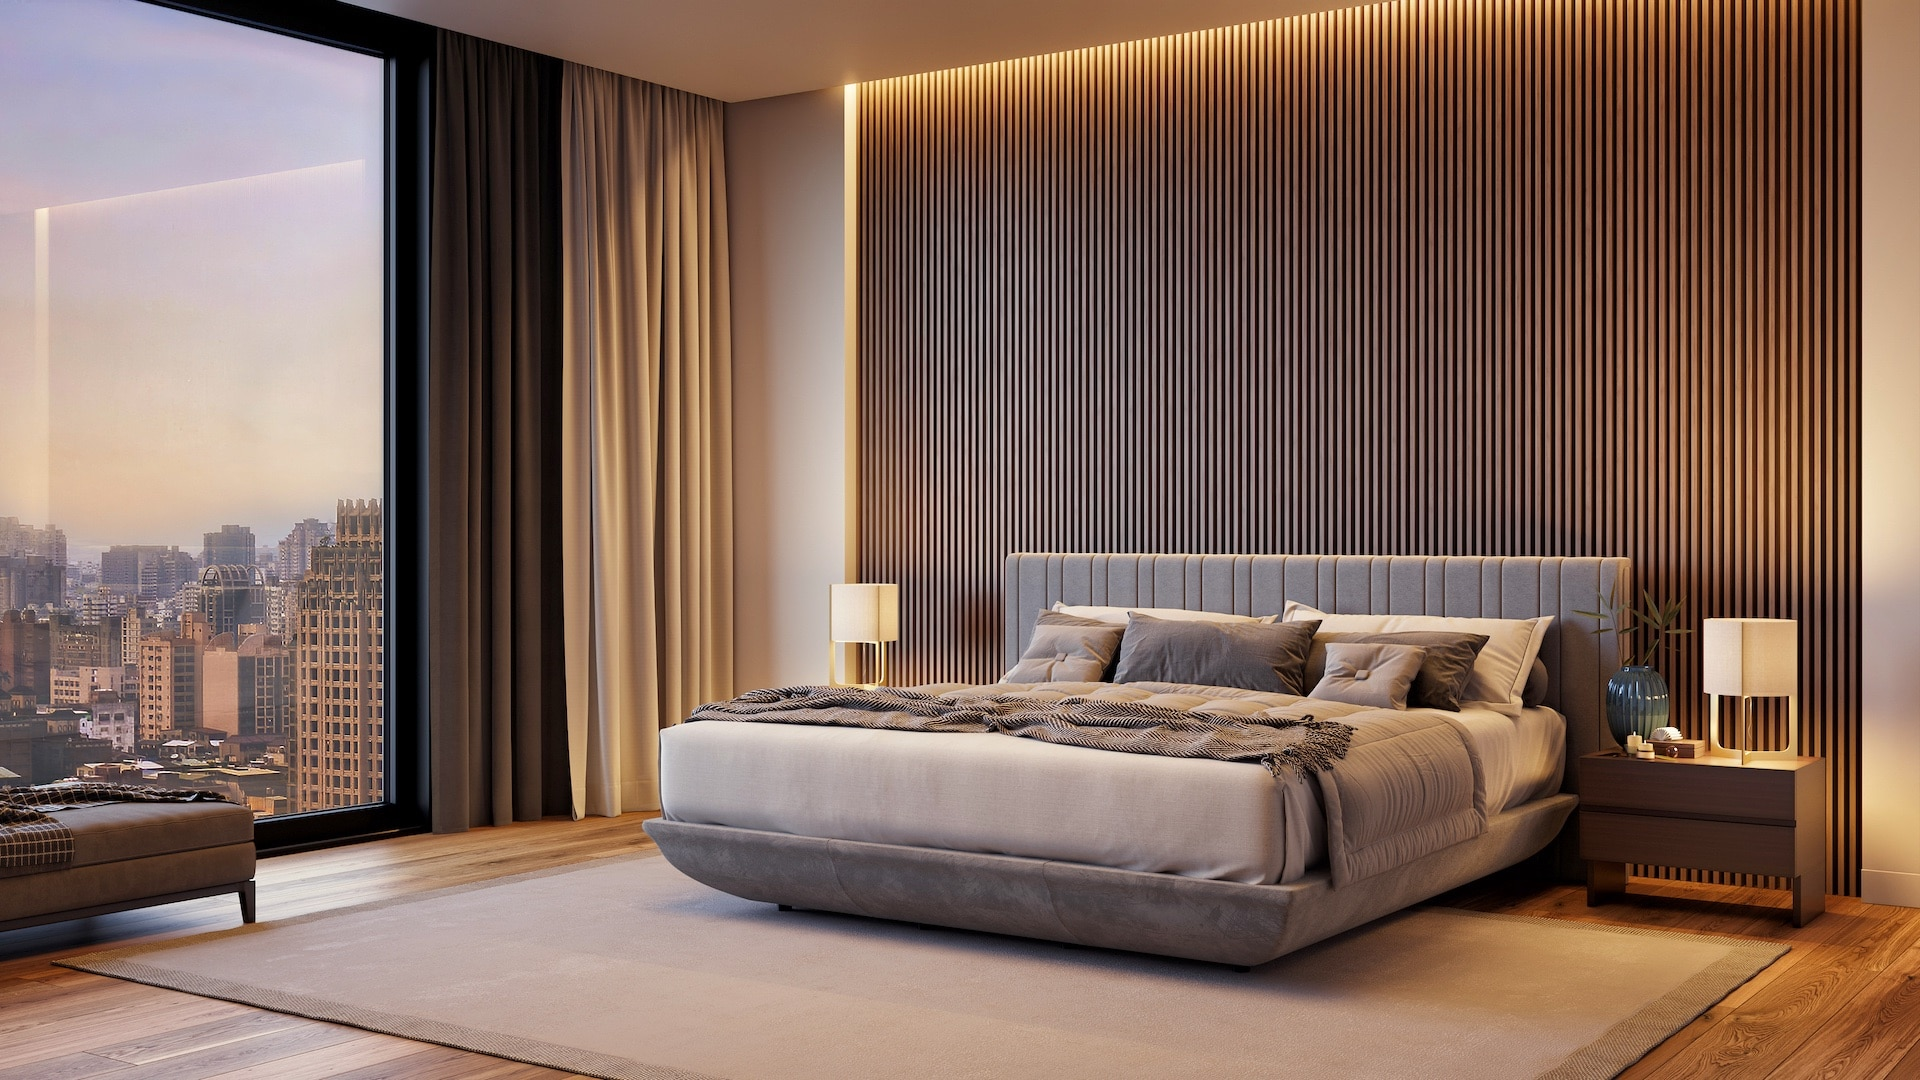 FreshBed iFo in Armani style room